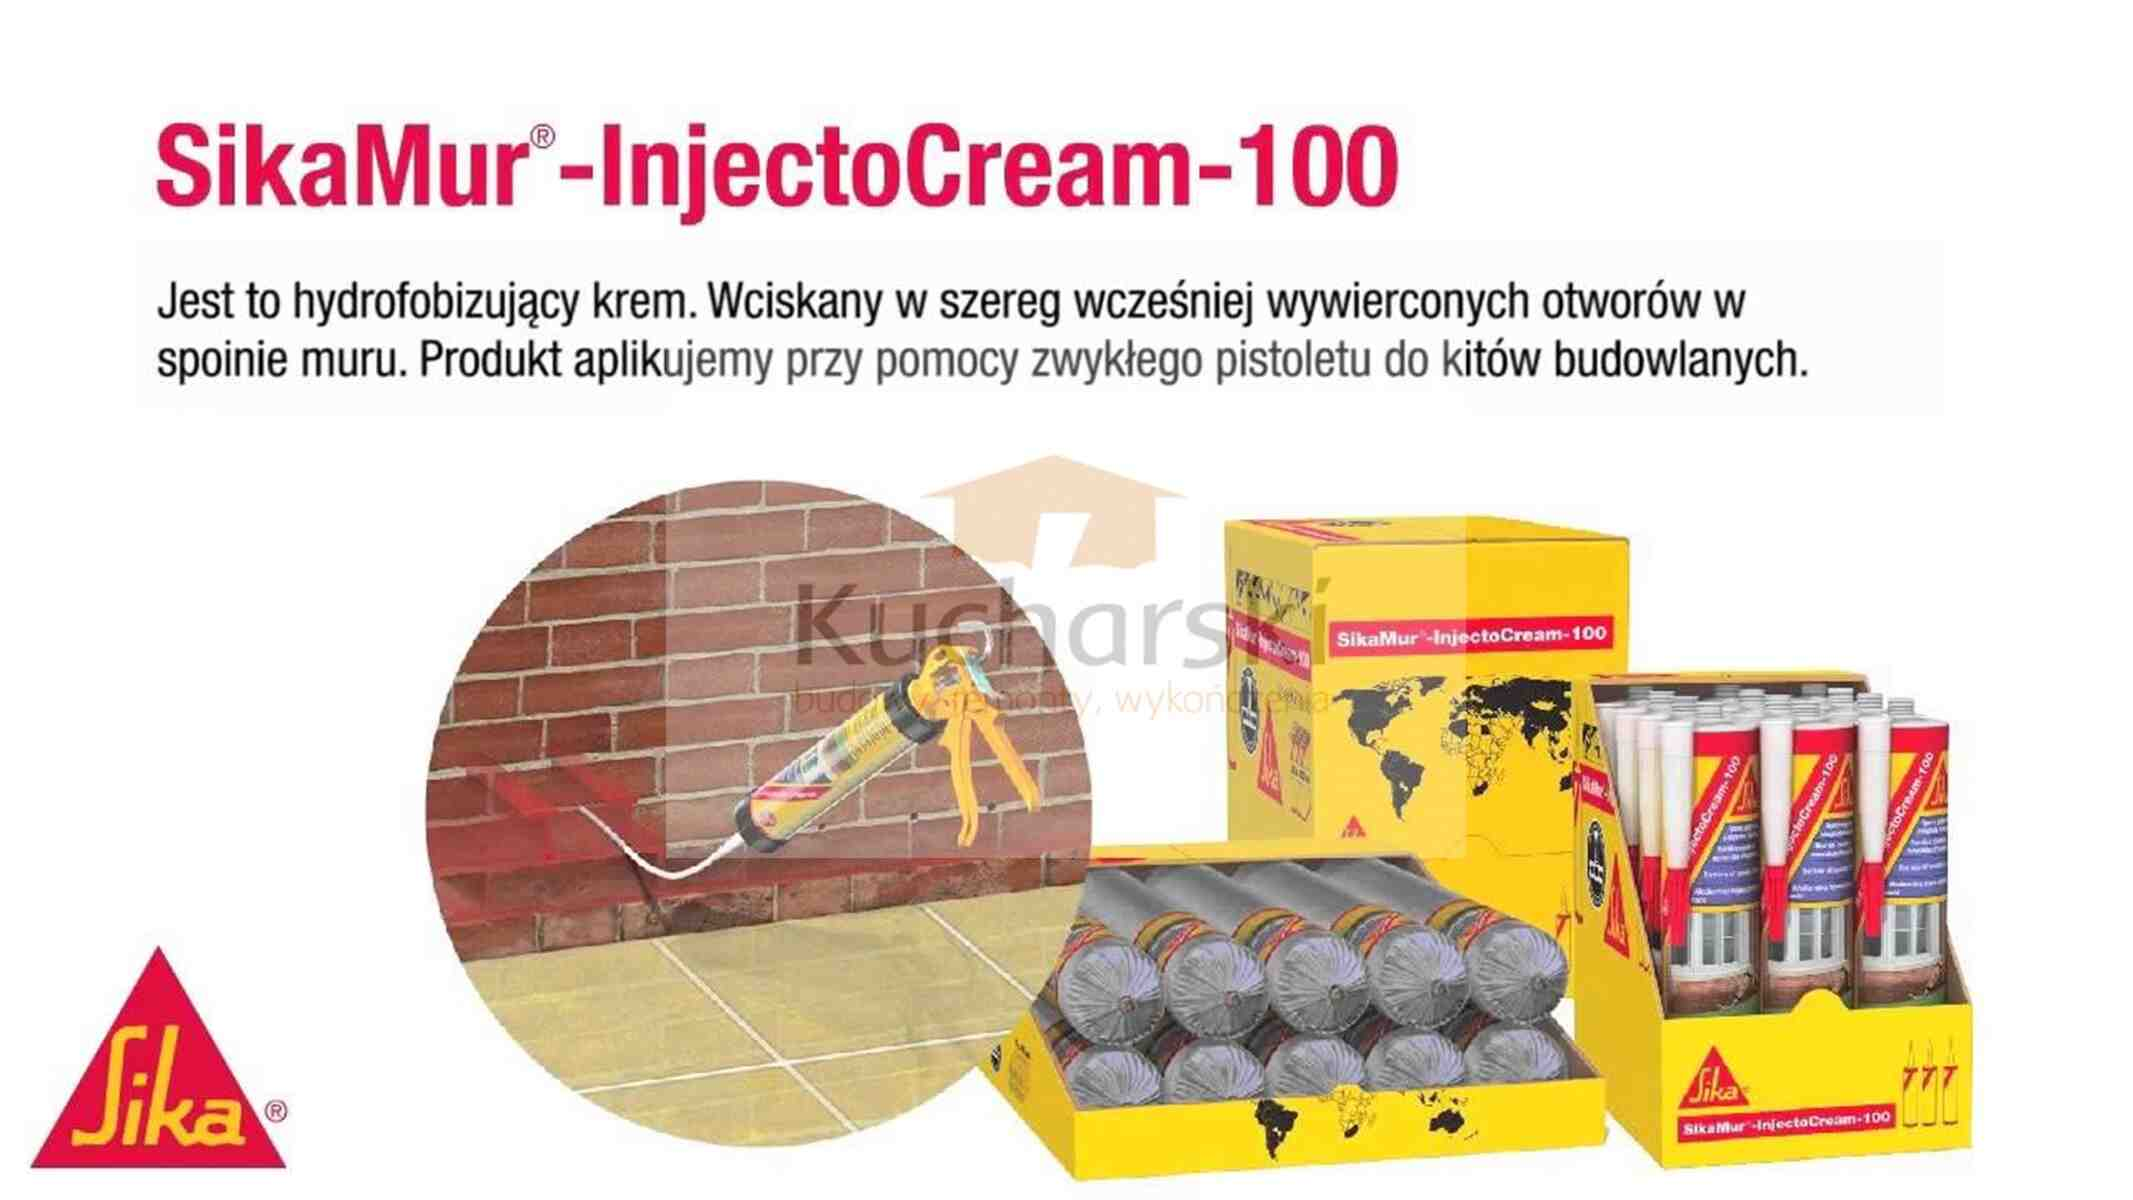 SikaMur ® - InjectoCream - 100